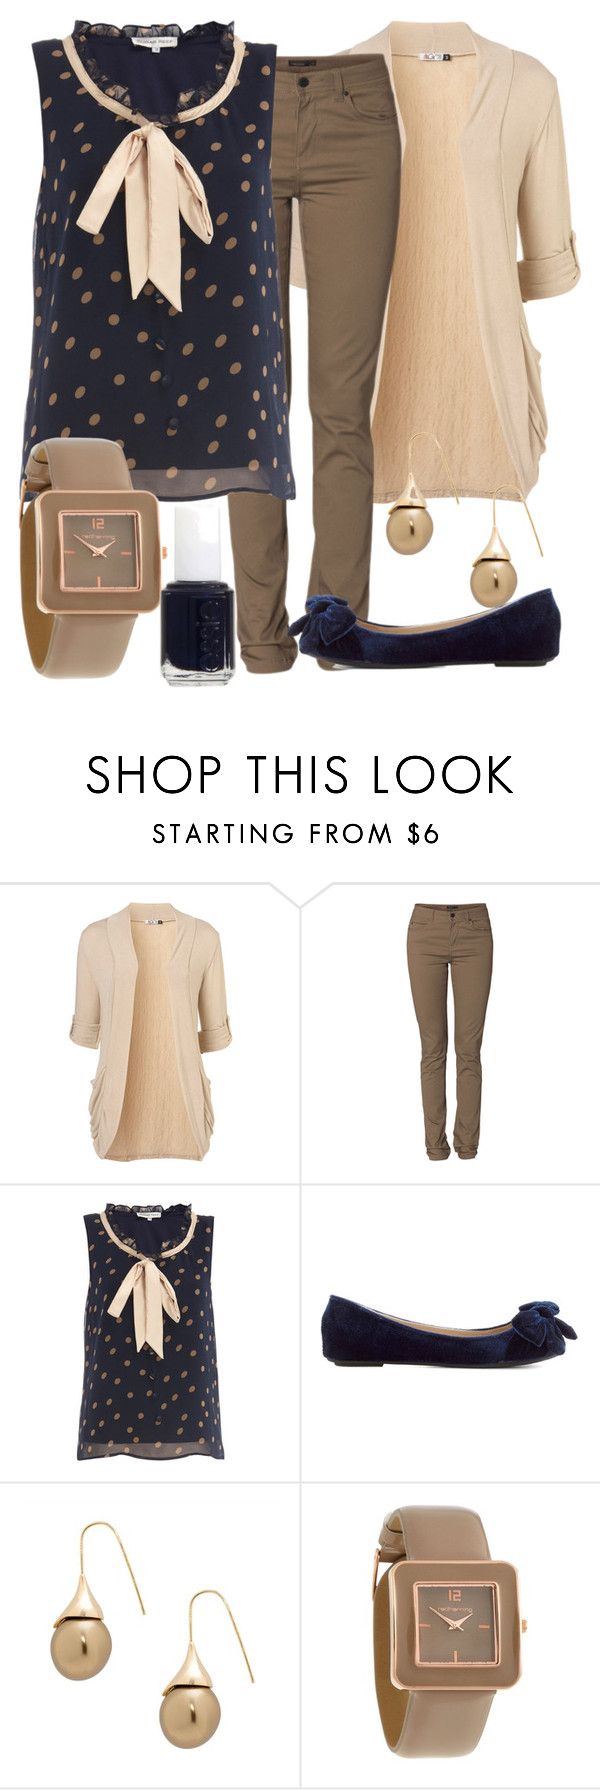 """Teacher Outfits on a Teacher's Budget 50"" by allij28 ❤ liked on Polyvore featuring WalG, Vero Moda, Sugar Reef, Betty Jackson, Red Herring, Essie, women's clothing, women, female and woman"